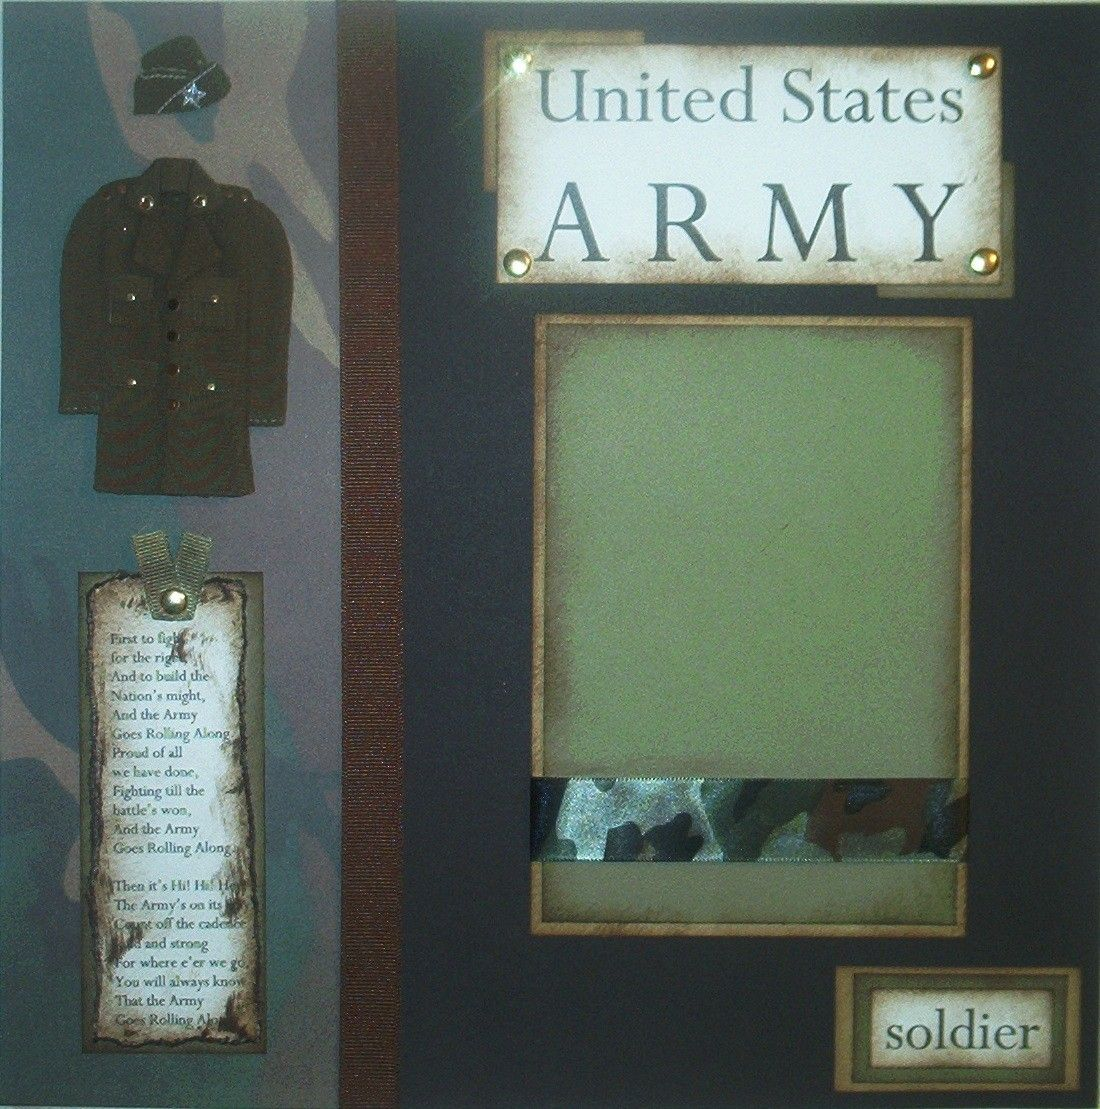 Scrapbook ideas military - Army Military Soldier 12x12 Premade Scrapbook Pages